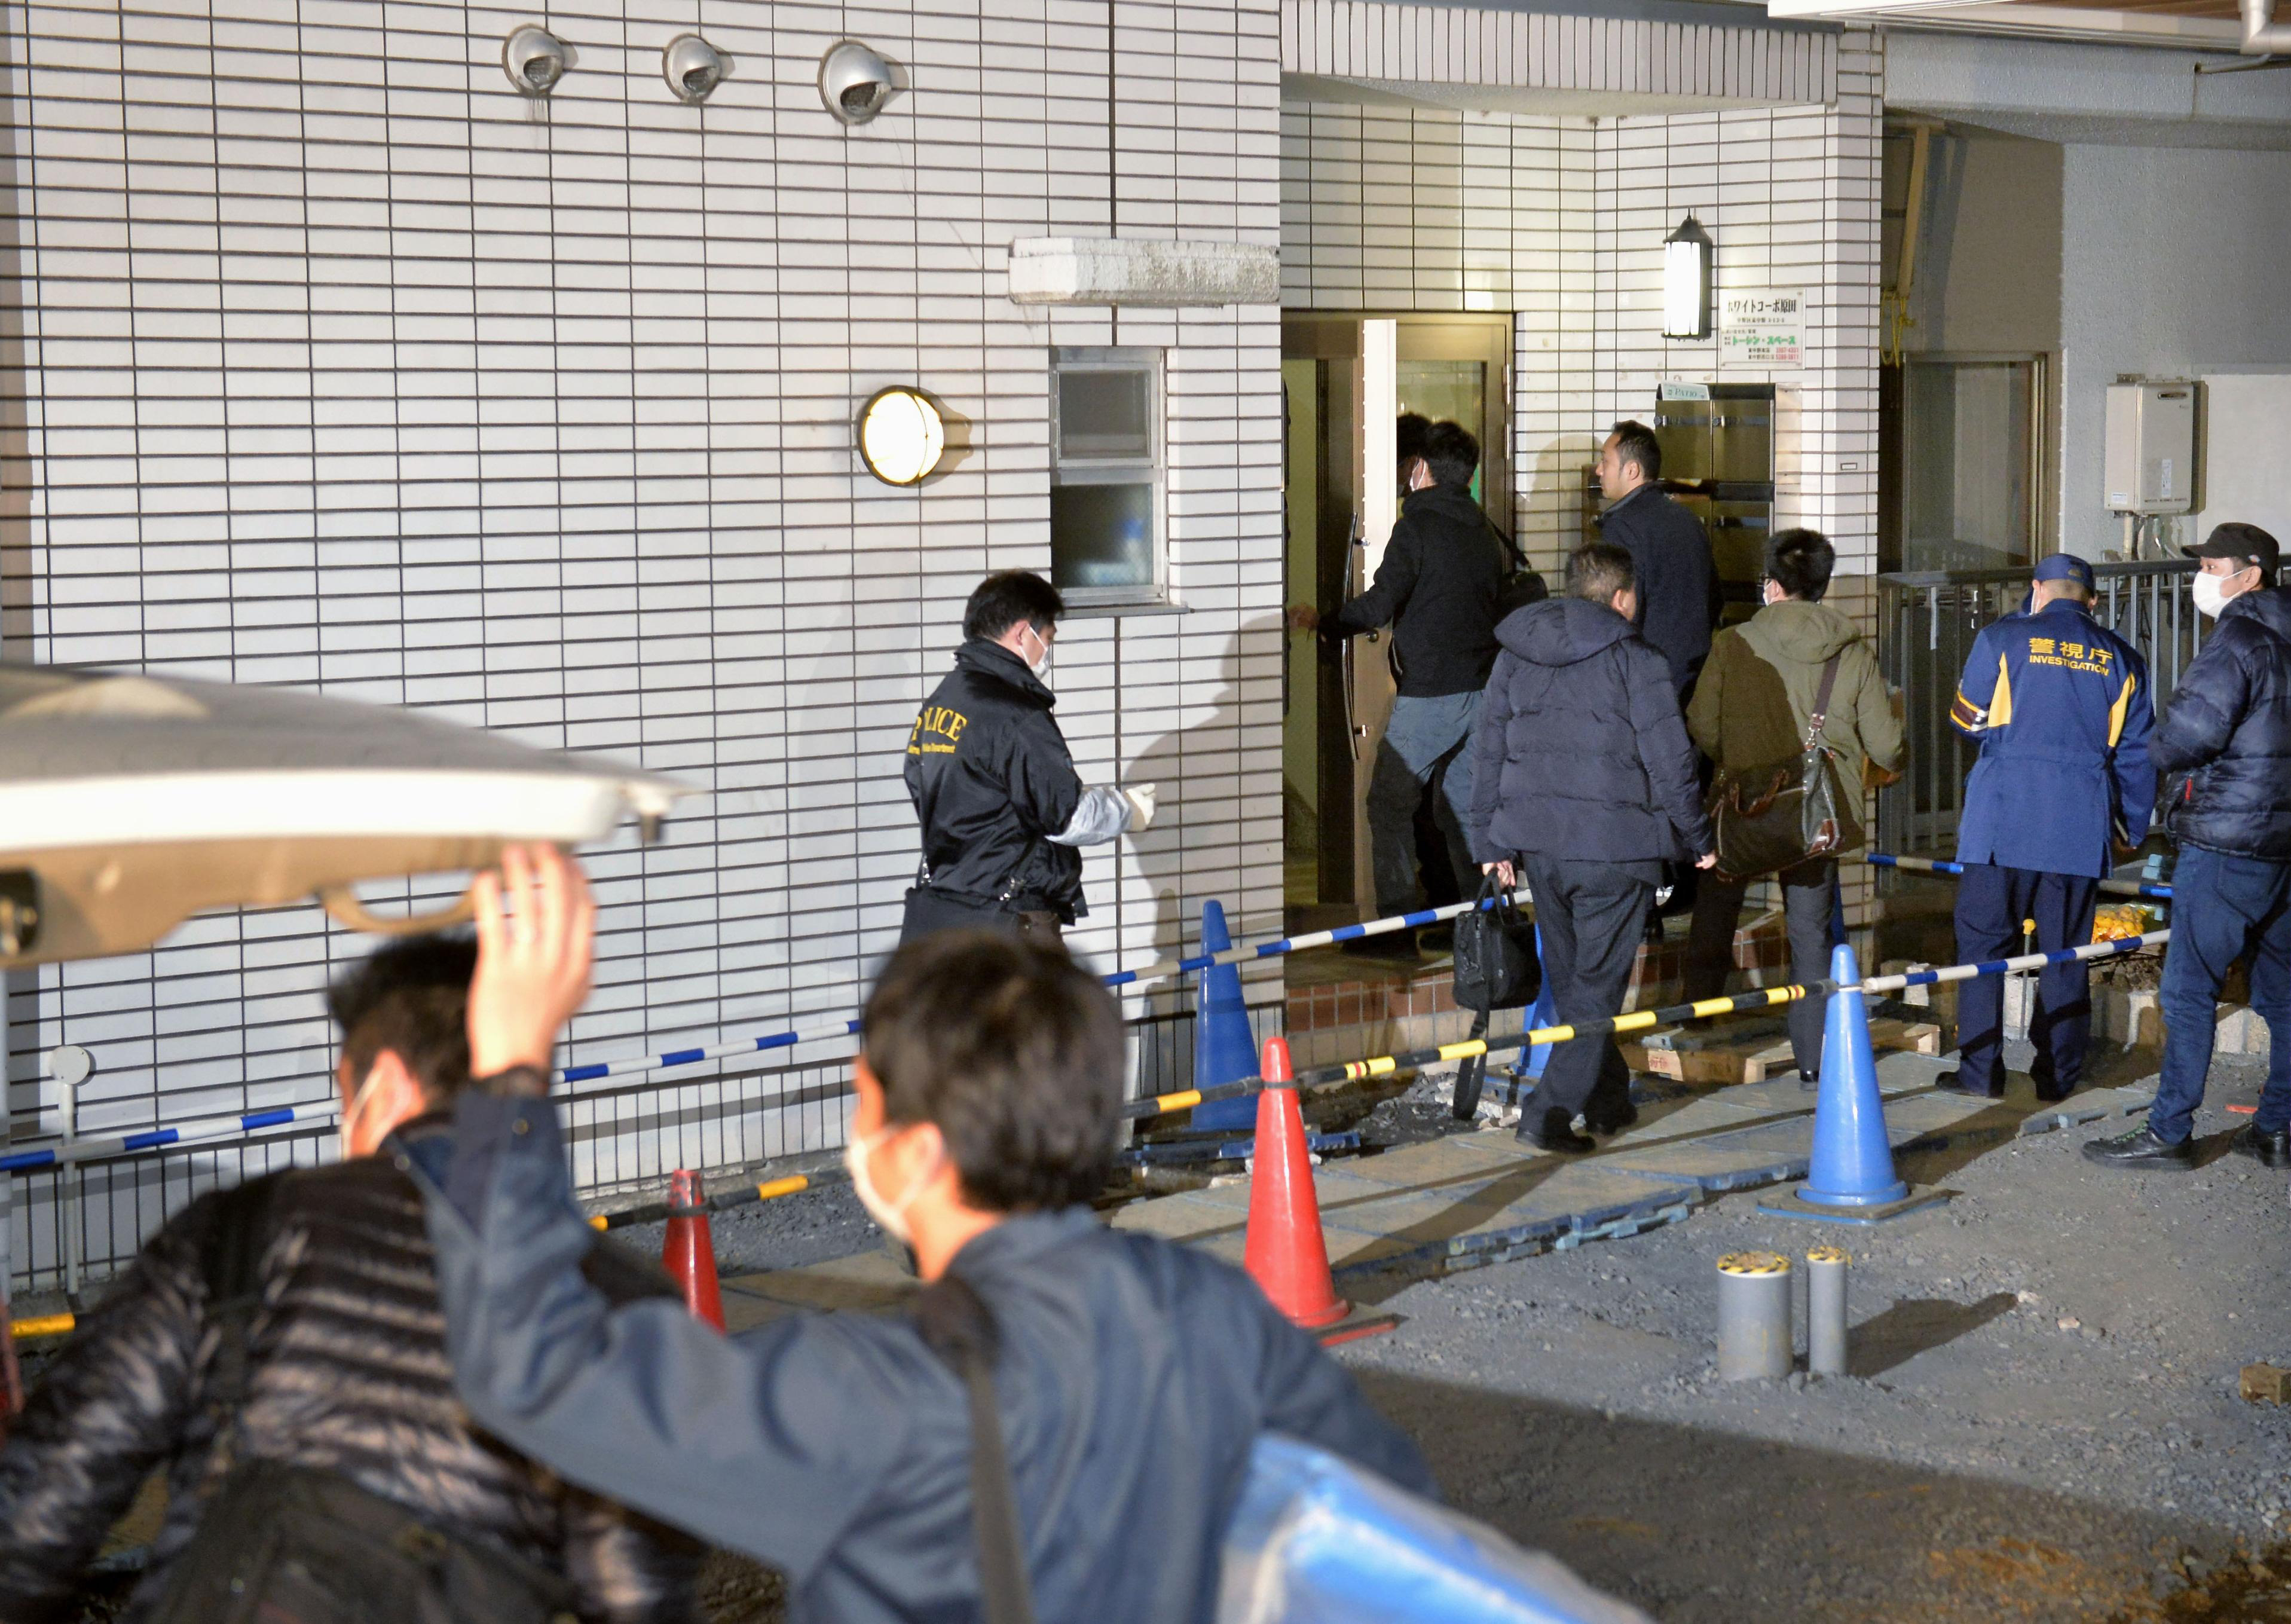 Police officers arrive for investigation of the apartment of abduction suspect Kabu Terauchi in Tokyo on March 28, 2016.